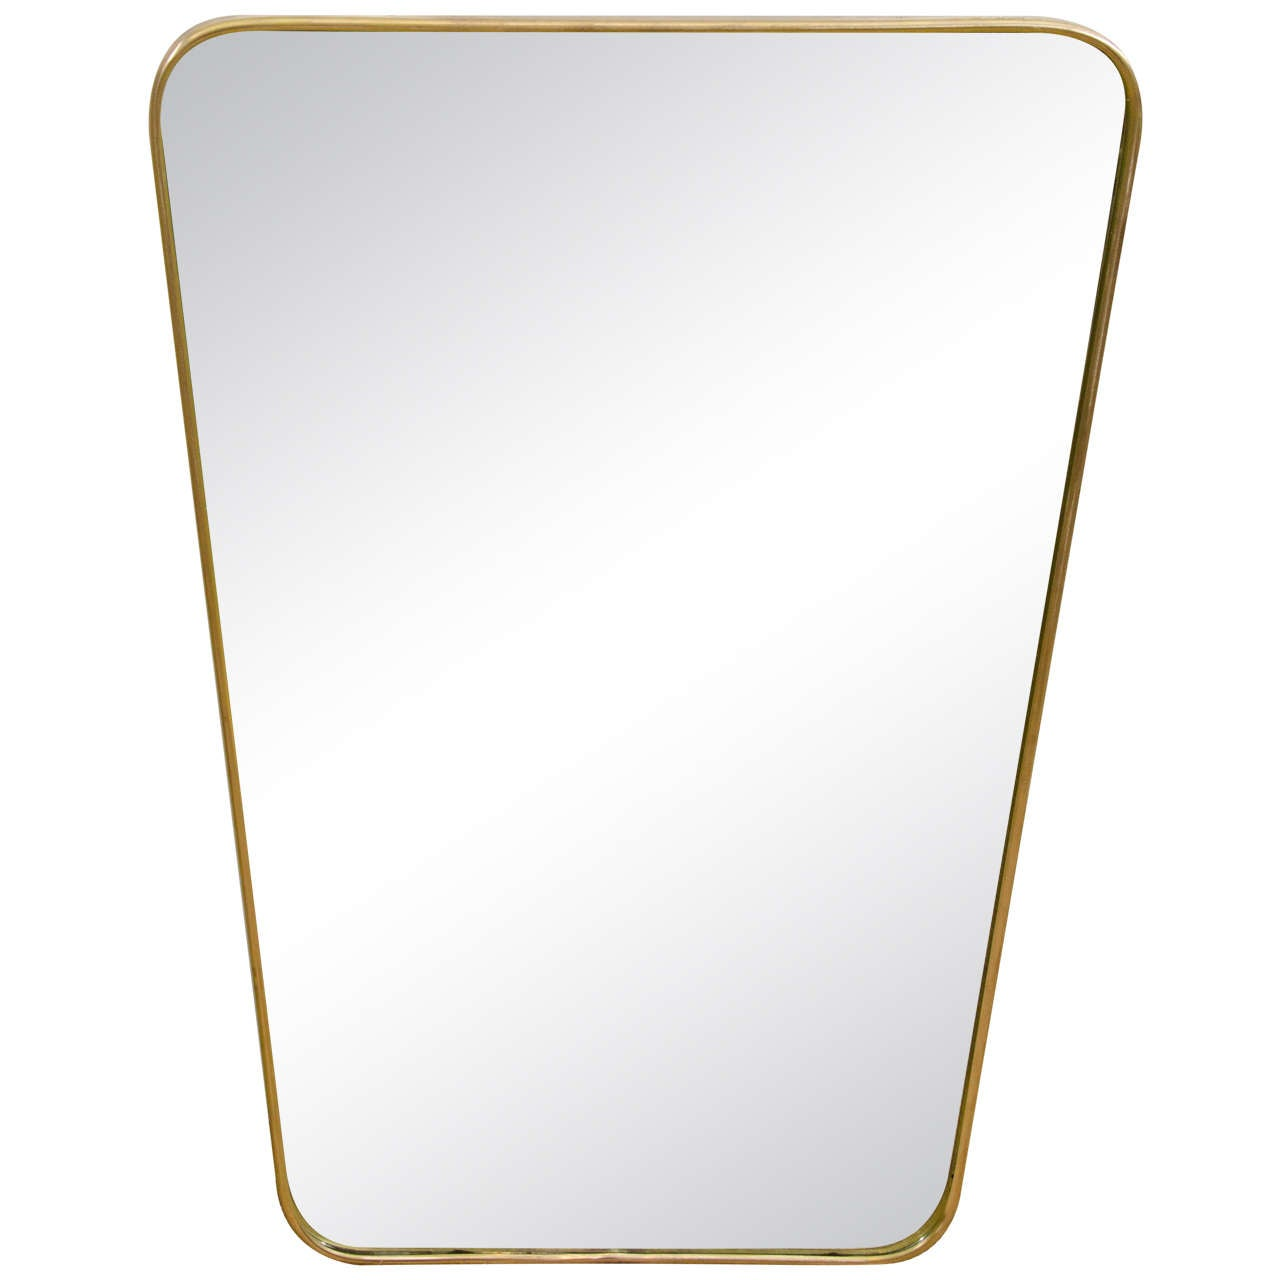 This italian circular wooden wall mirror is no longer available - Italian Modernist 1950s Brass Framed Mirror 1